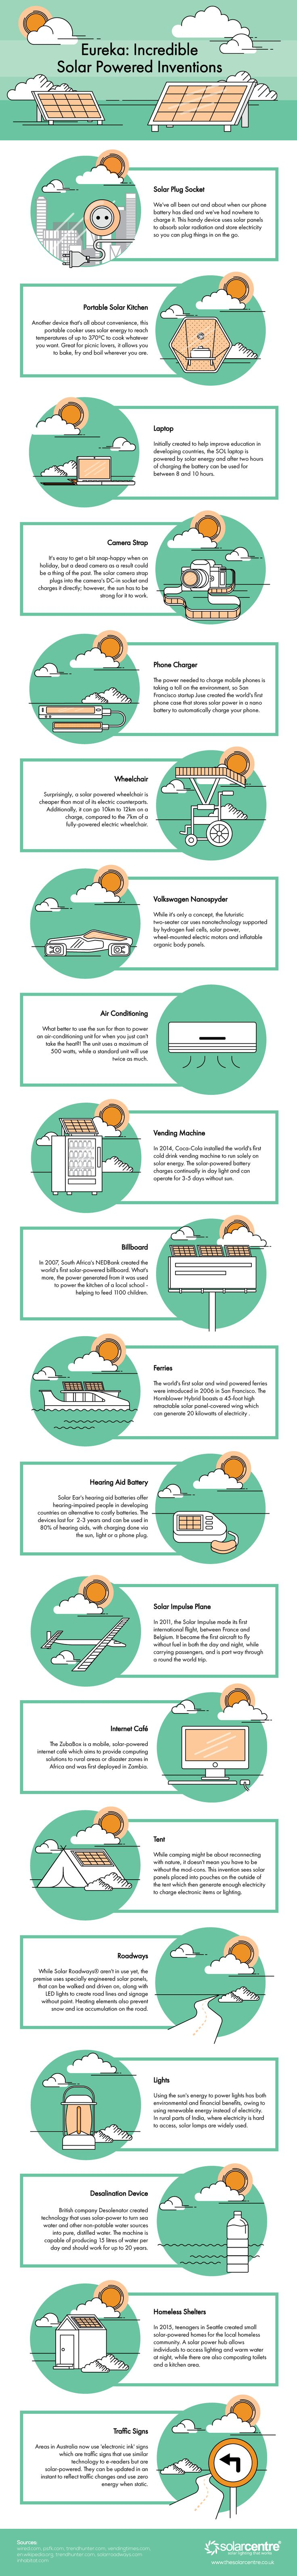 Eureka: Incredible Solar Powered Inventions #Infographic #Energy #Technology